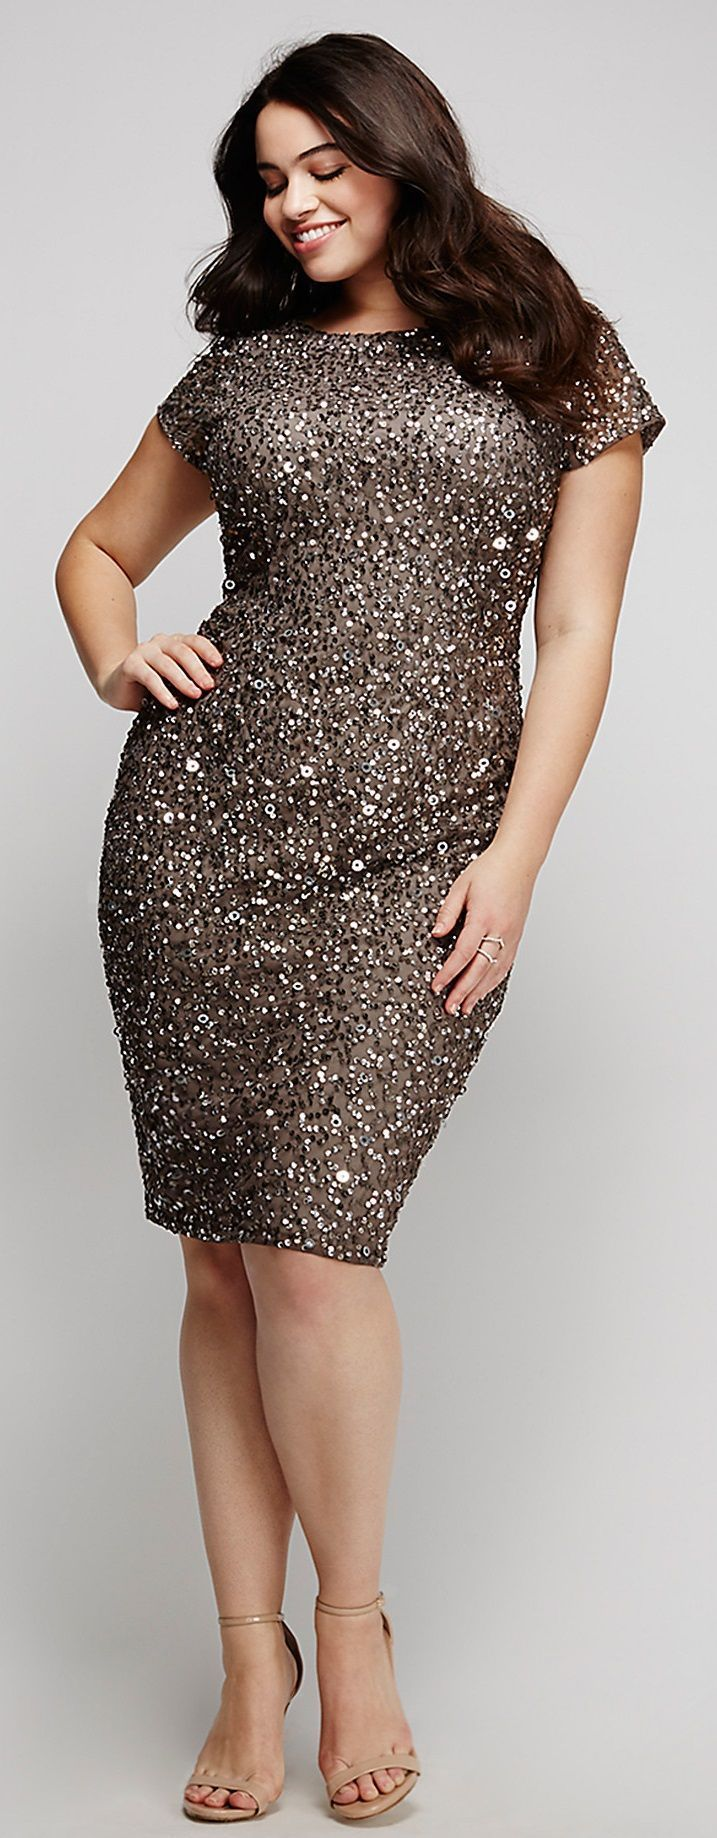 nice Lane Bryant - Lane Bryant Sequin Cap-Sleeve Dress by http://www.globalfashionista.xyz/plus-size-fashion/lane-bryant-lane-bryant-sequin-cap-sleeve-dress/